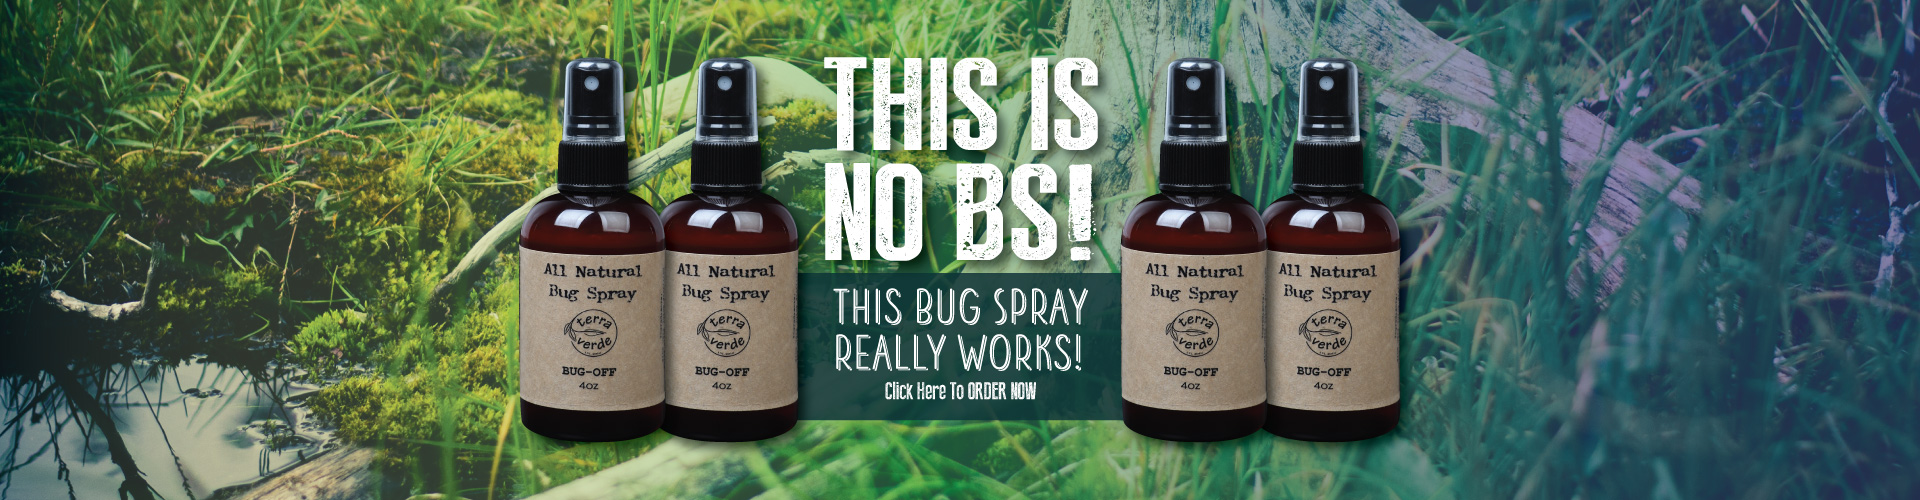 Bug Spray Banner